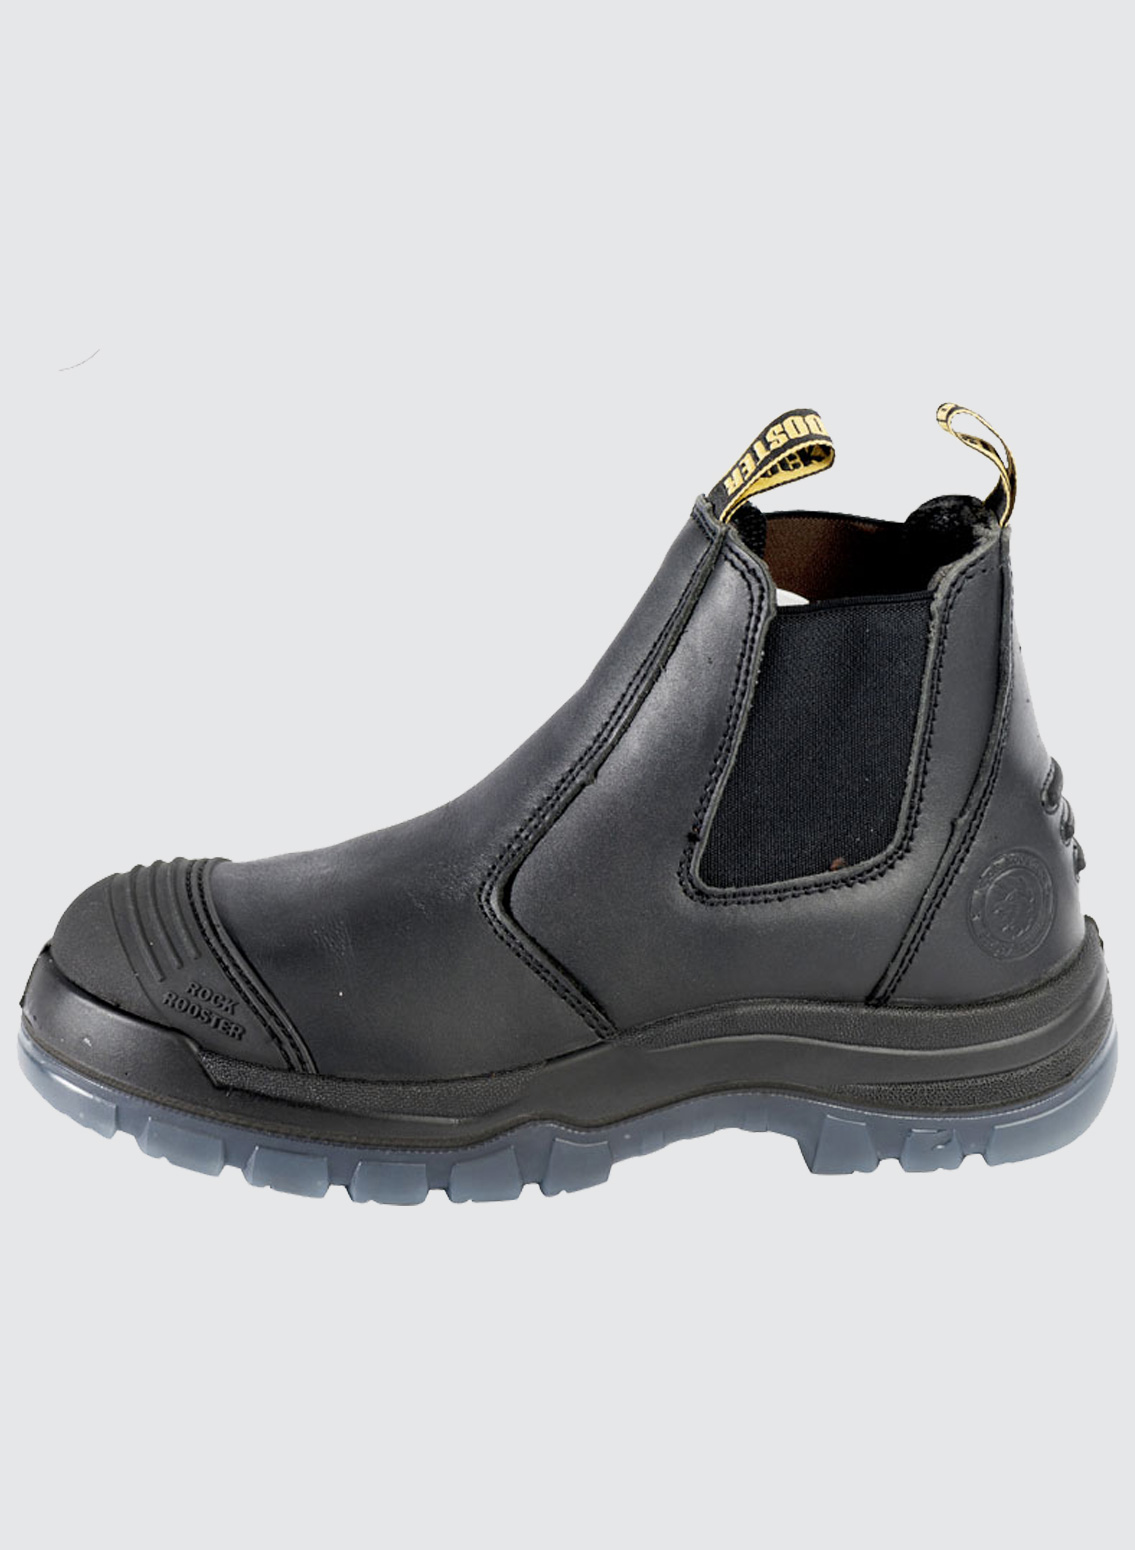 6b23d516177 AK227 BAKKEN Work boot - Business Image Group